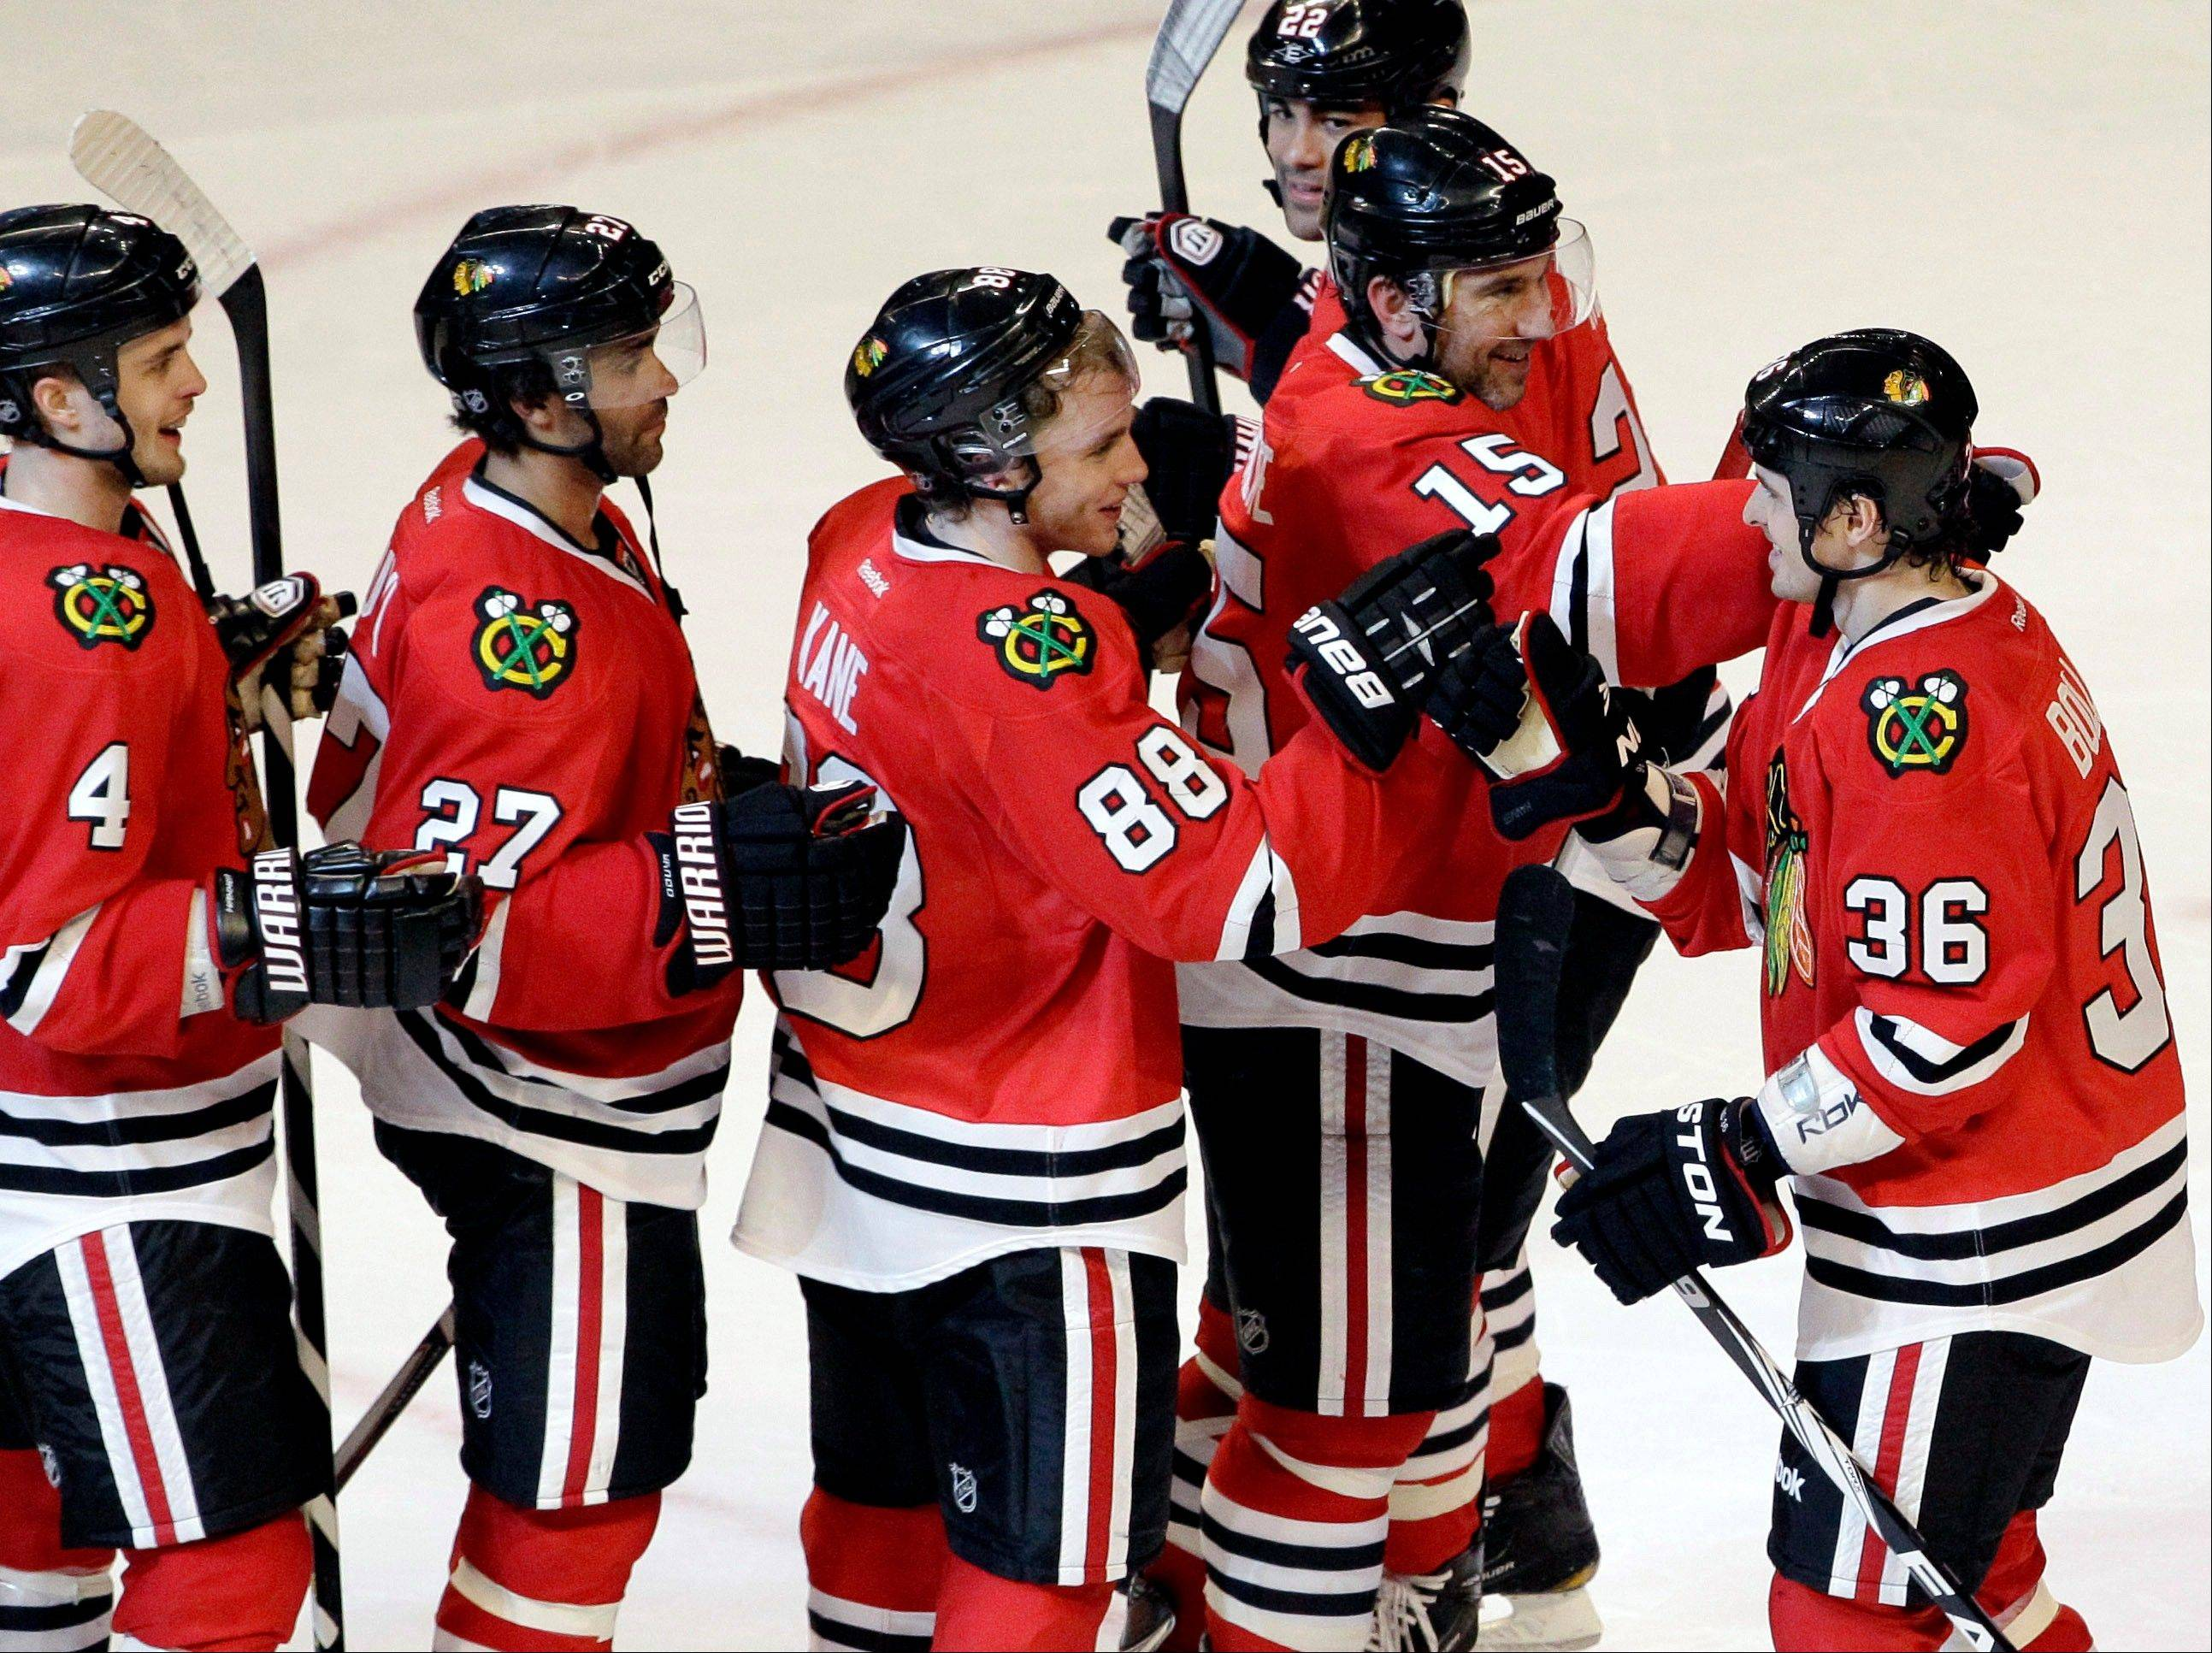 The Blackhawks' Dave Bolland (36) greets teammates Thursday night after his shootout goal defeated the Blues at the United Center.